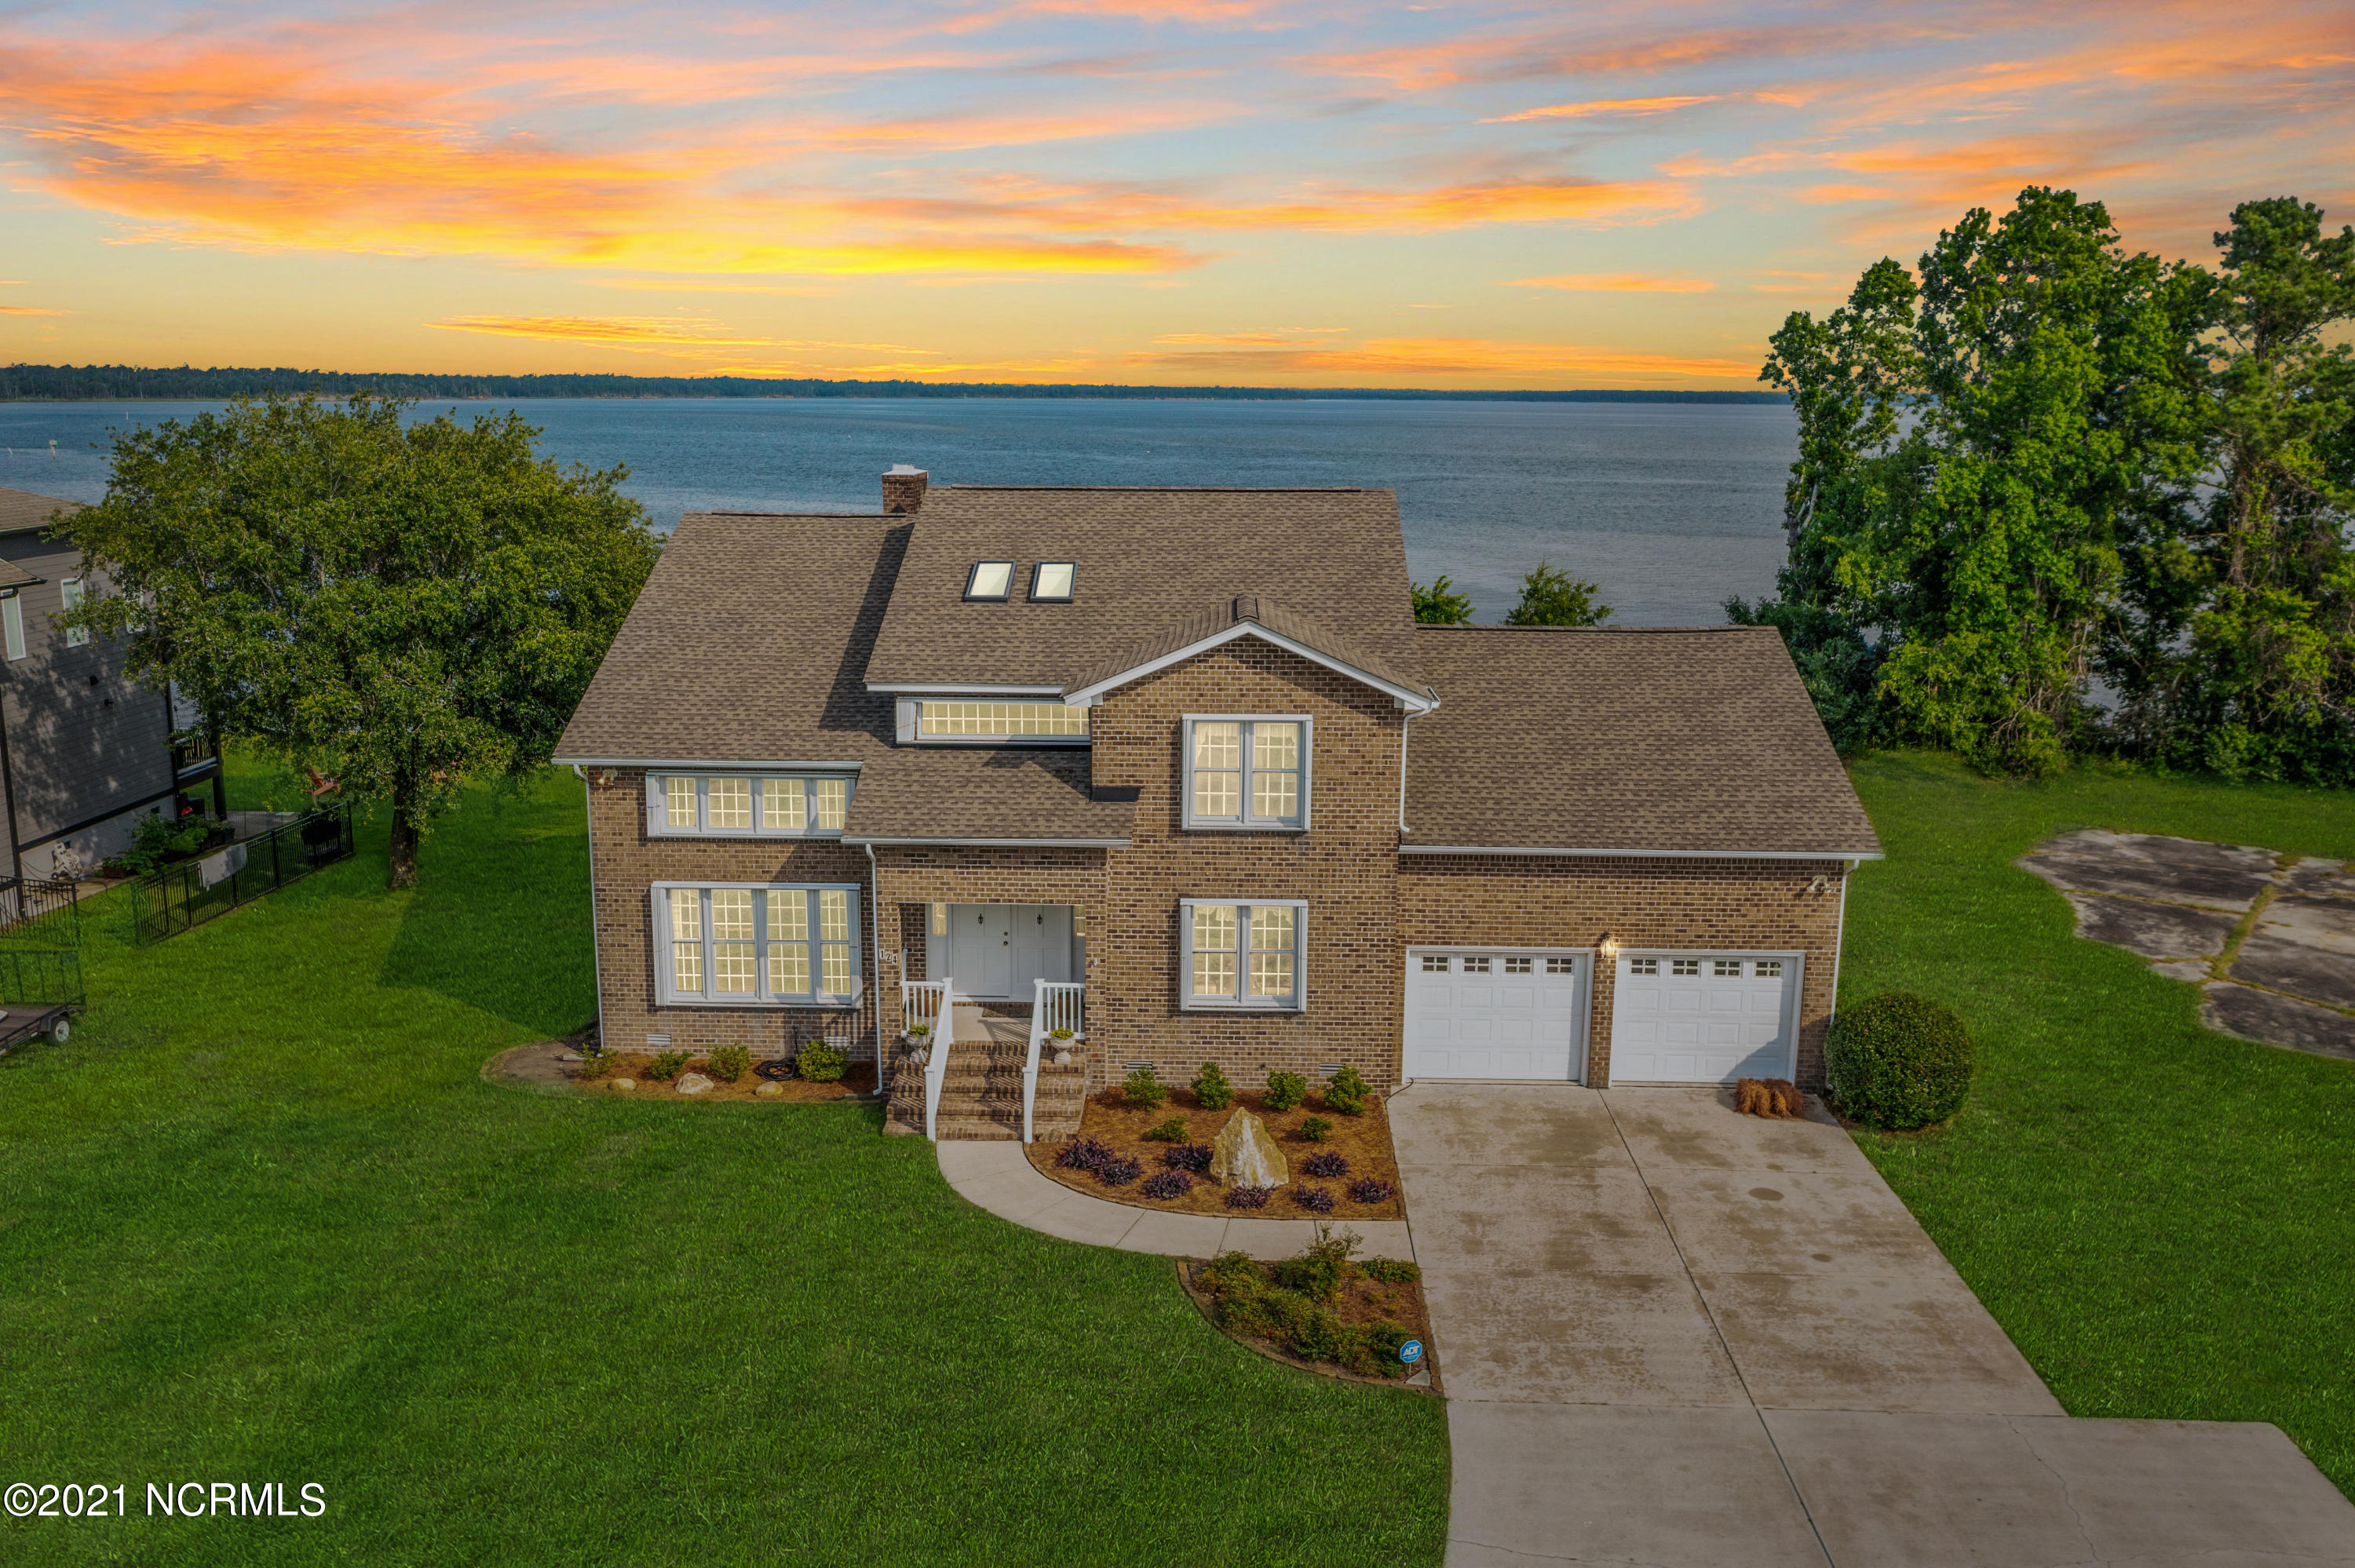 From the moment you arrive at this stunning waterfront property, that does not require flood insurance, you know this is a special place to call home. Immaculate gardens and manicured lawns welcome you while a porch invites you to step inside and discover the heart and soul of this elegant beauty.  Built in 1989, this is the first time this residence has been offered for sale and it has never been rented so you will be only the second owner to enjoy this luxurious lifestyle. Inside, a beautiful blend of original features and modern comforts combine to ensure a home you'll be proud to call your own.  A grand double-height entrance foyer sets the tone, with a curved staircase leading to the upper level where you will discover the decadent owner's suite. Here, parquetry flooring flows underfoot paired with a fireplace, a luxe ensuite and French doors that open out to the upper-level balcony.  The living spaces on the lower level include a formal living room and an elegant dining room, plus a family room with a fireplace and a breakfast nook that enjoys sweeping views over the lawn and out to the water. The well-equipped kitchen will delight anyone who loves to cook and there is also a rear patio where you can relish year-round entertaining.  Outside, the alfresco living spaces have been crafted to make the most of the sensational water views. You can start your day with a coffee in hand on the lower deck as you overlook the land or take the spiral staircase to the elevated deck and really take in that panoramic vista.  For the boating enthusiast, a dock is in need of rebuilding, offering the perfect chance for you to create the perfect dock to suit your needs. If you have dreams of further expansion or perhaps a boathouse or detached guest suite, then the neighboring, vacant key-shaped lot is the perfect space to bring your plans to life. Available for sale, this is a great way to instantly expand your land and enjoy an expansive private water front